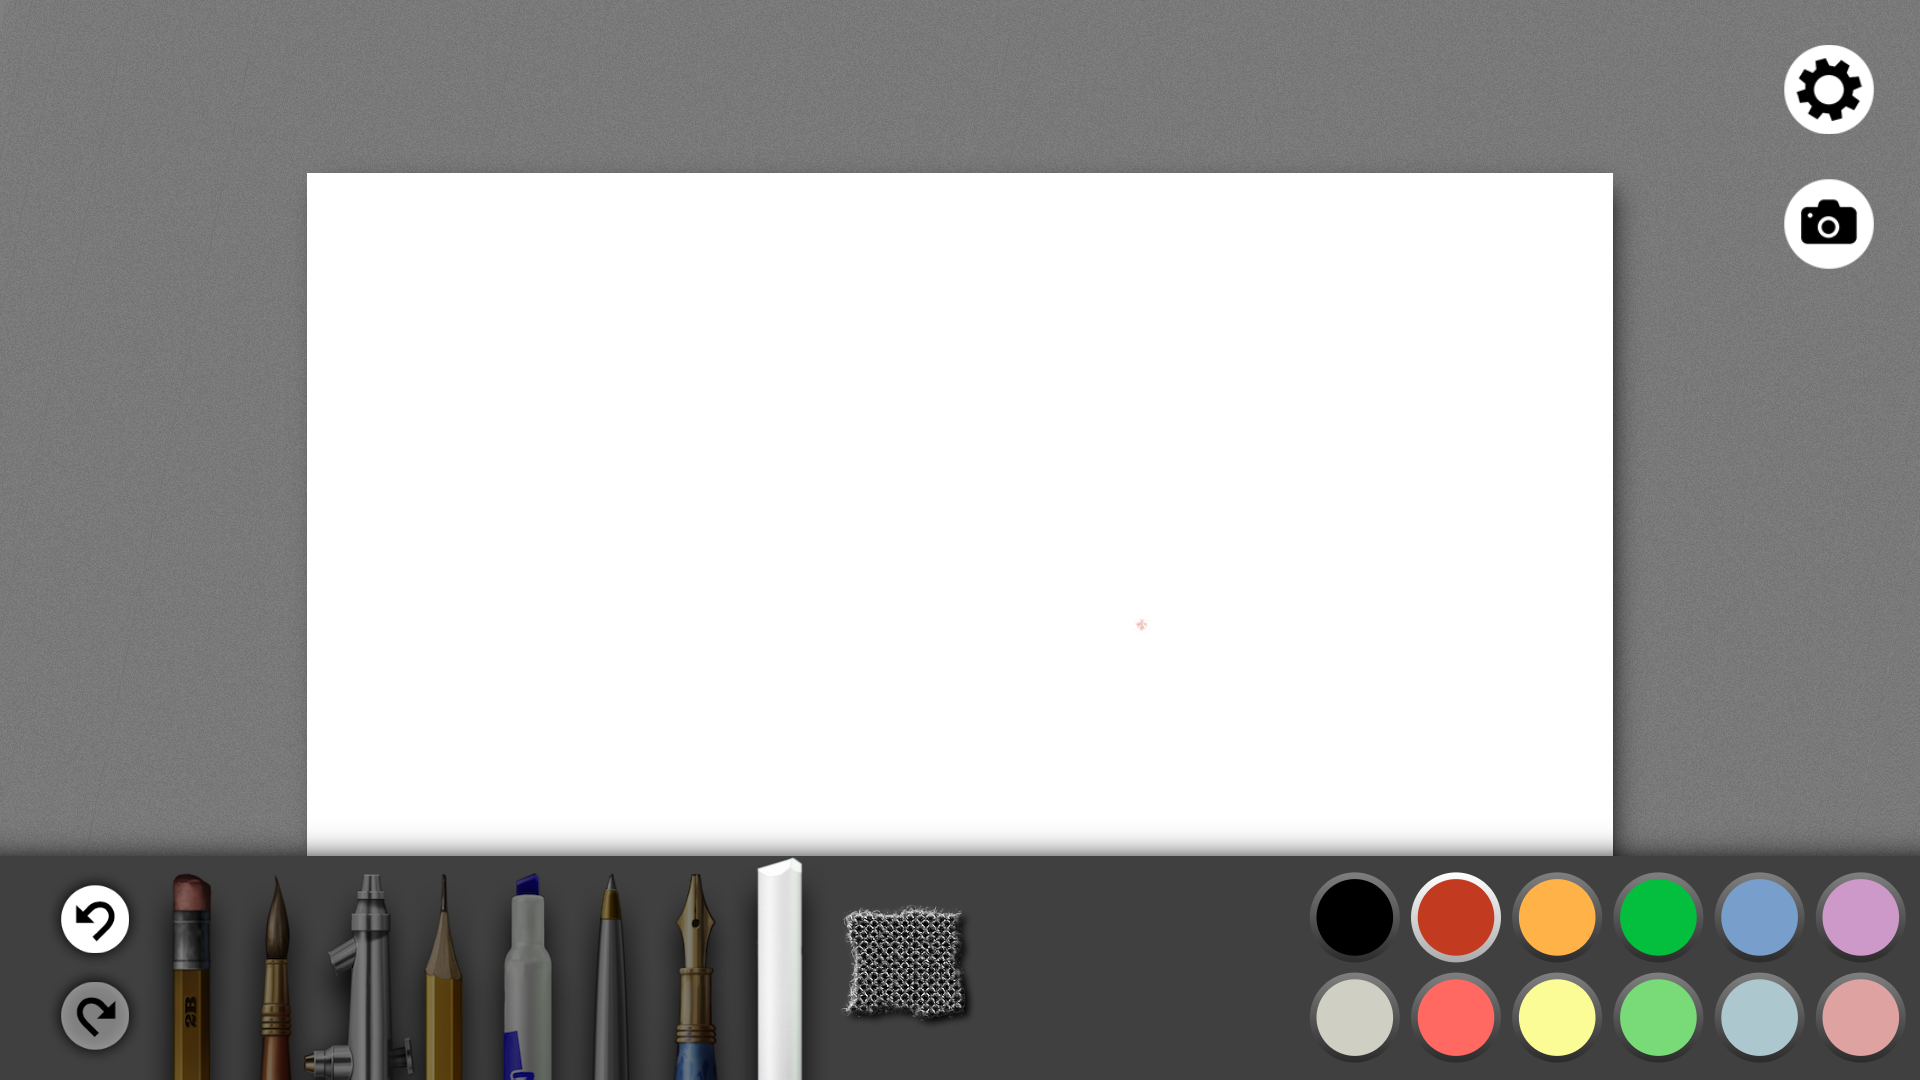 Once inside a sketchbook, the UI is very simple. Settings and camera/picture load options are on the top right and tools, paper texture and color palette is on the bottom. The free version ships with only the eraser and brush. All other tools (including the color picker!) are sold seperately in-app. Total cost is $11.99